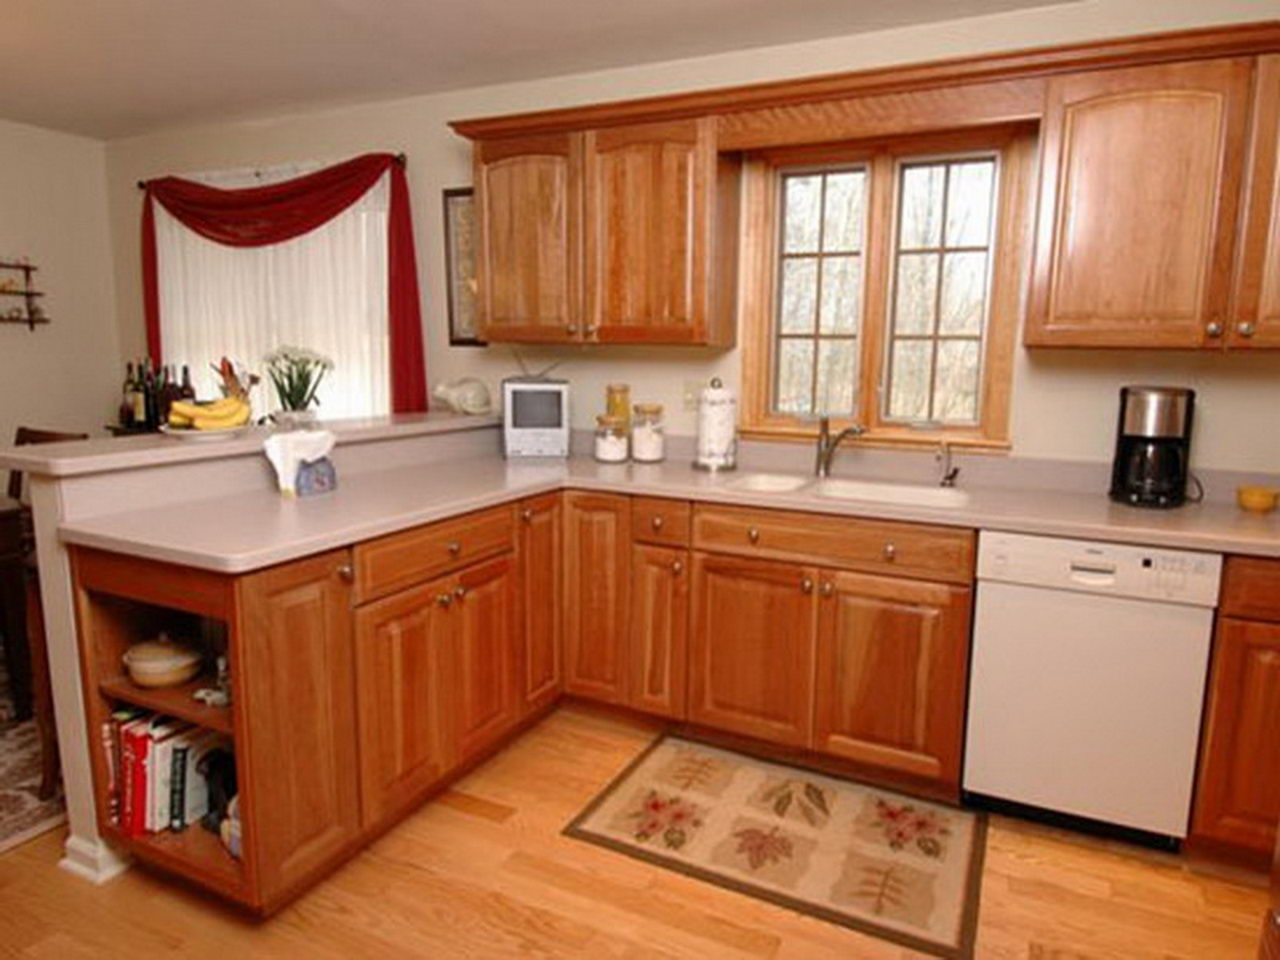 Kitchen cabinets and storage ideas homedizz for Different kitchen ideas